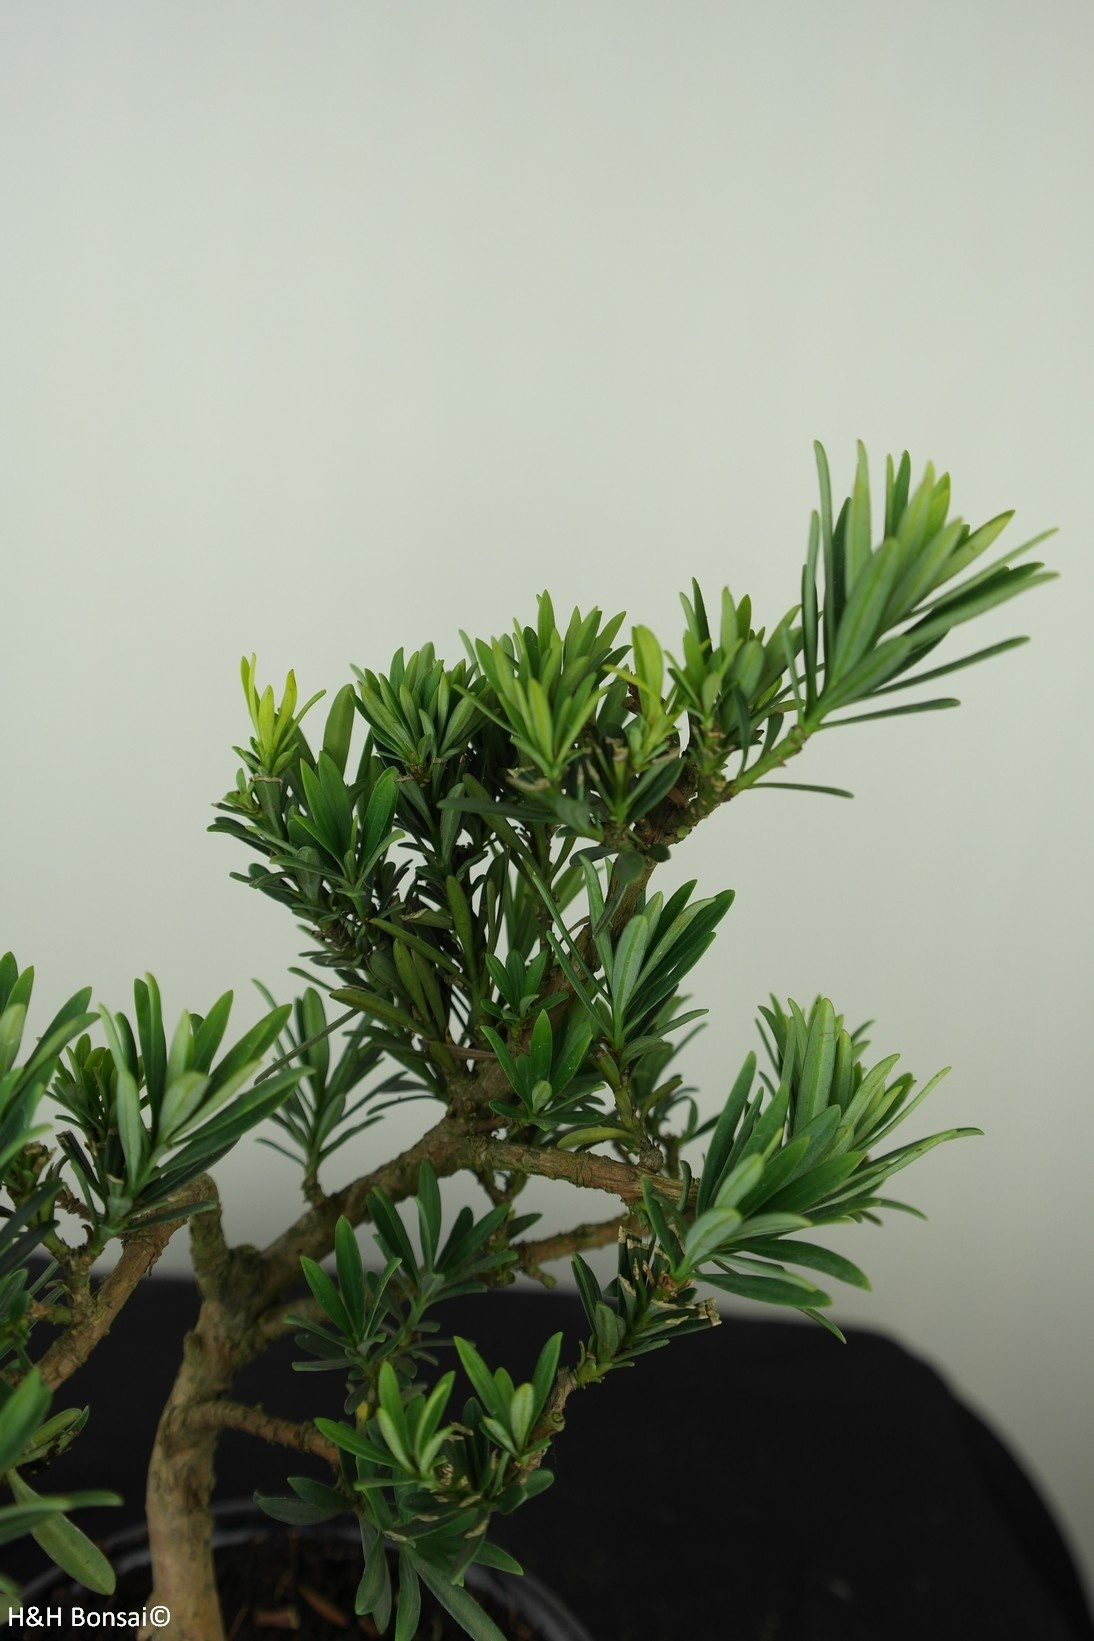 Bonsai Buddhist Pine, Podocarpus, no. 7559